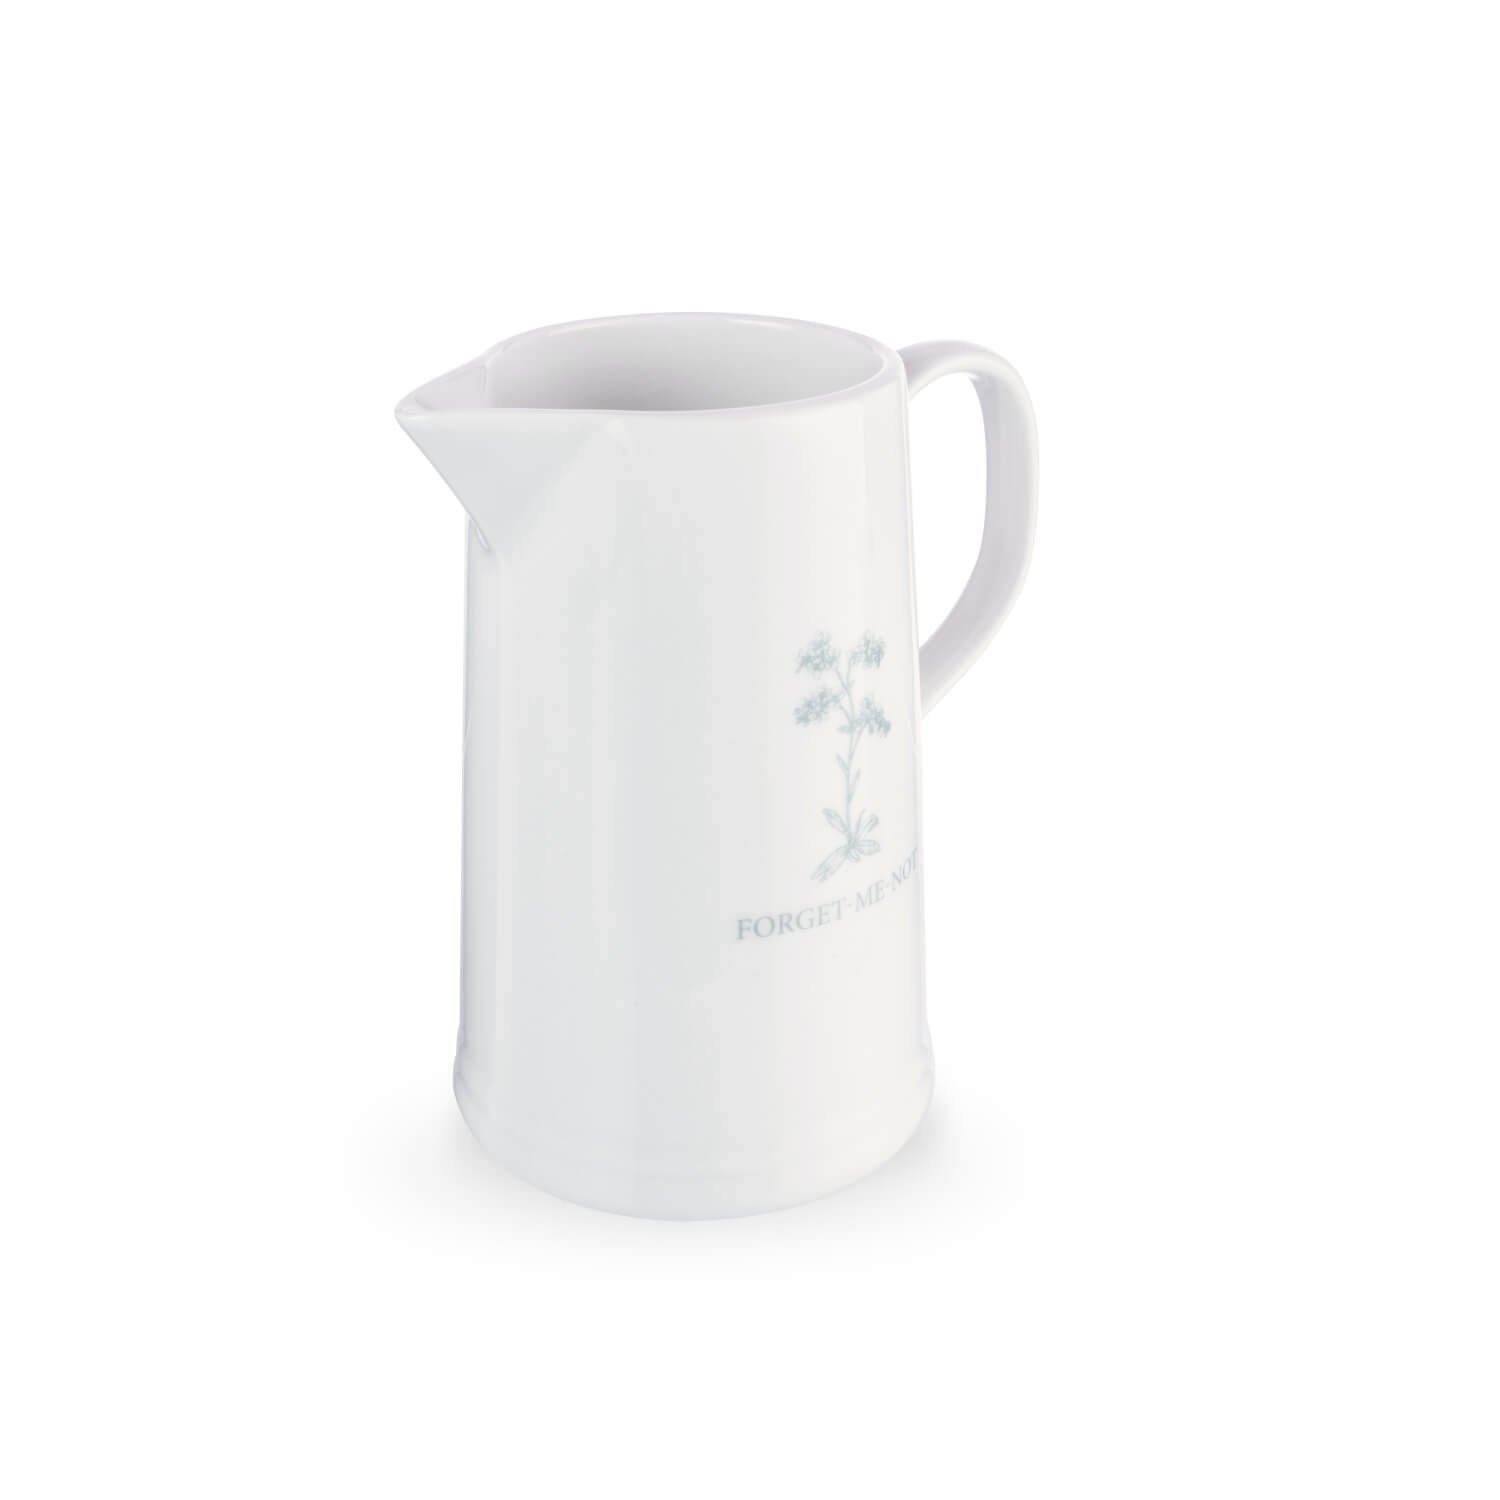 GARDEN COLLECTION FORGET ME NOT SMALL JUG